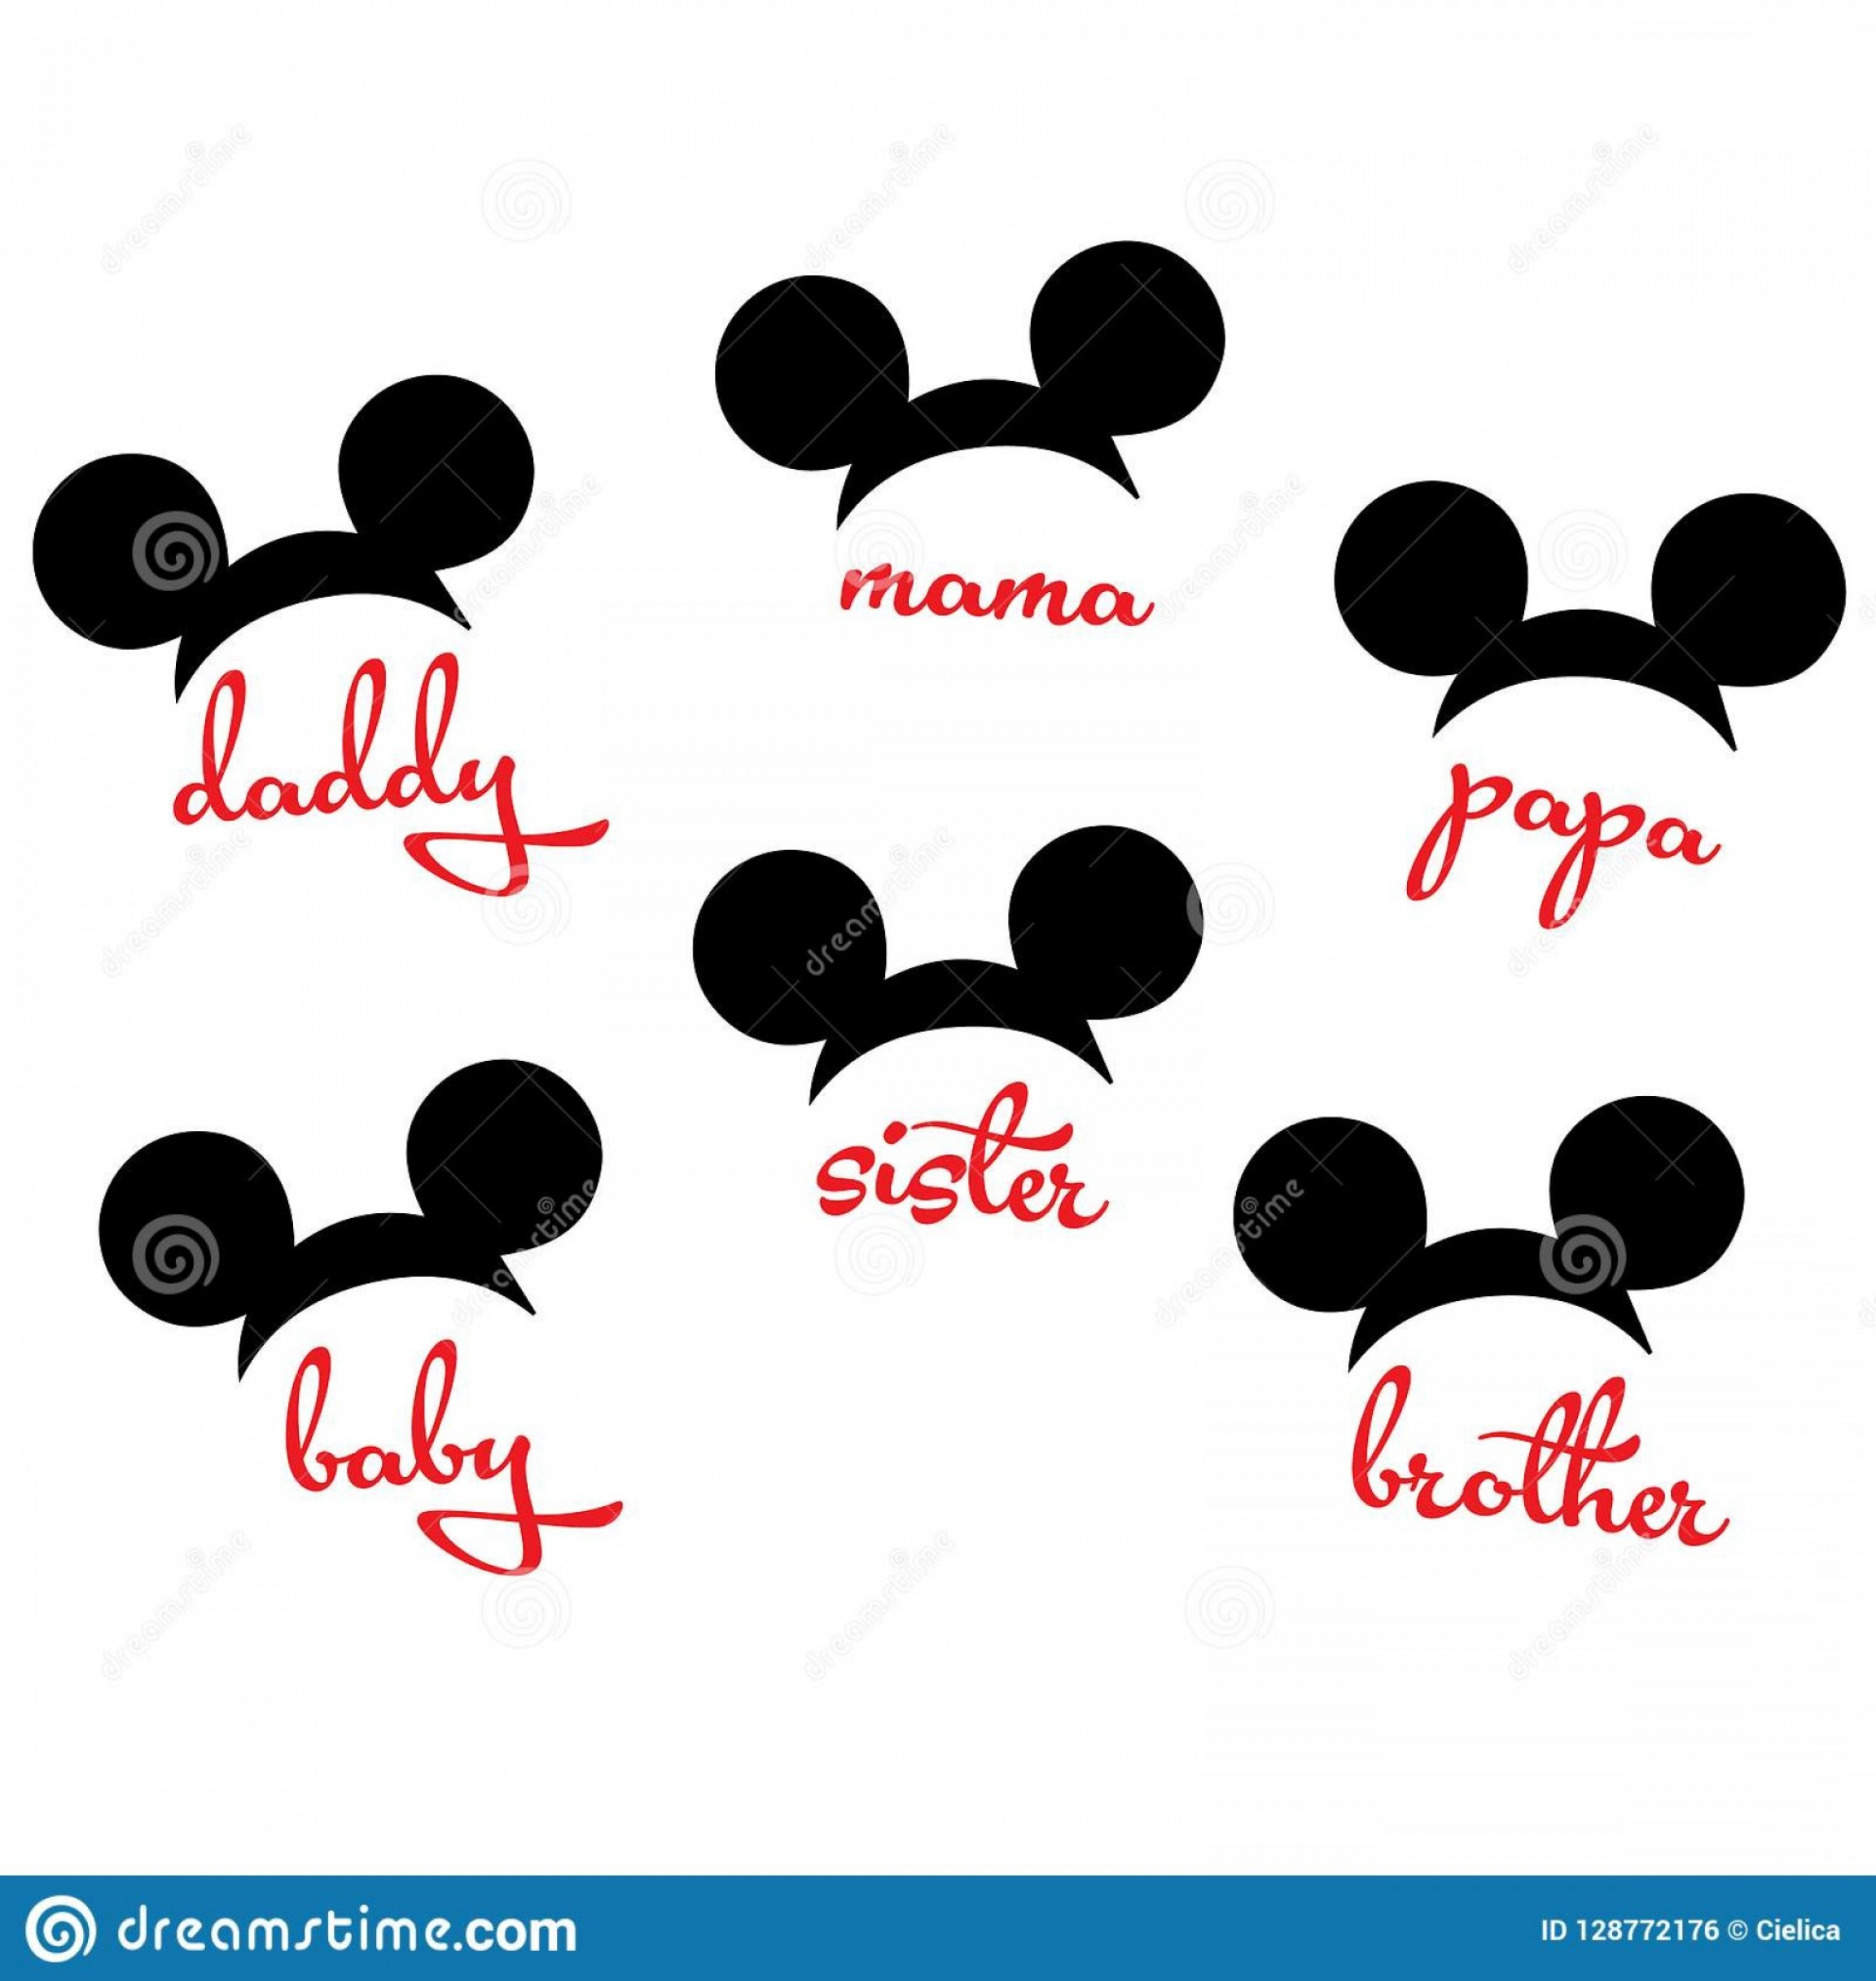 Minnie Mouse Head Vector: Mickey Mouse Minnie Mouse Head Family Vector Image Cutting File Mickey Mouse Minnie Mouse Head Family Vector Image Cutting File Image